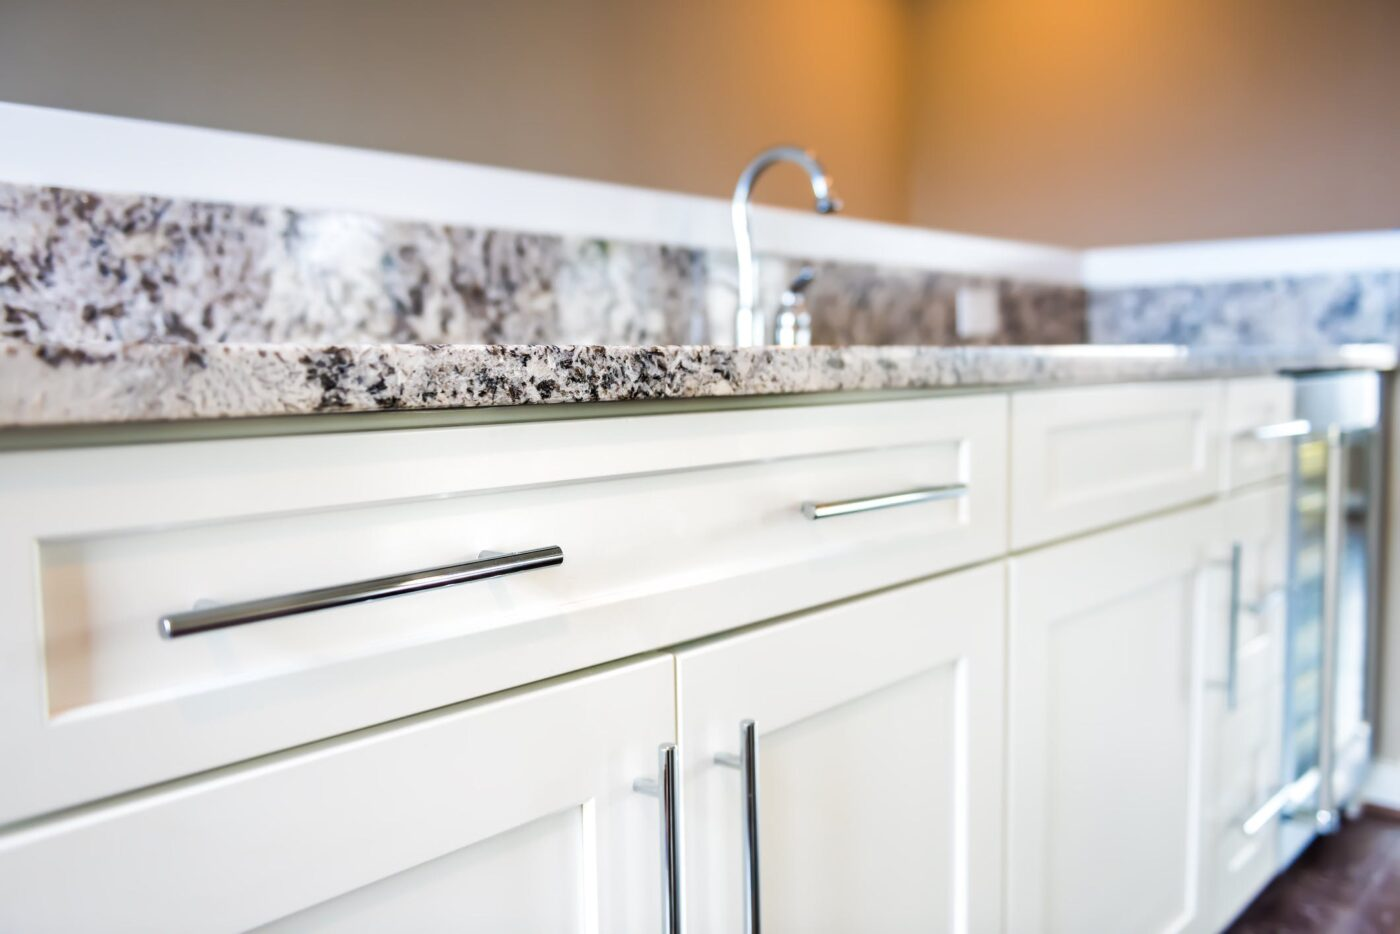 Image of iStock 900213558 2 in Quartz or granite: examples to help you choose the ideal material for your kitchen countertop - Cosentino